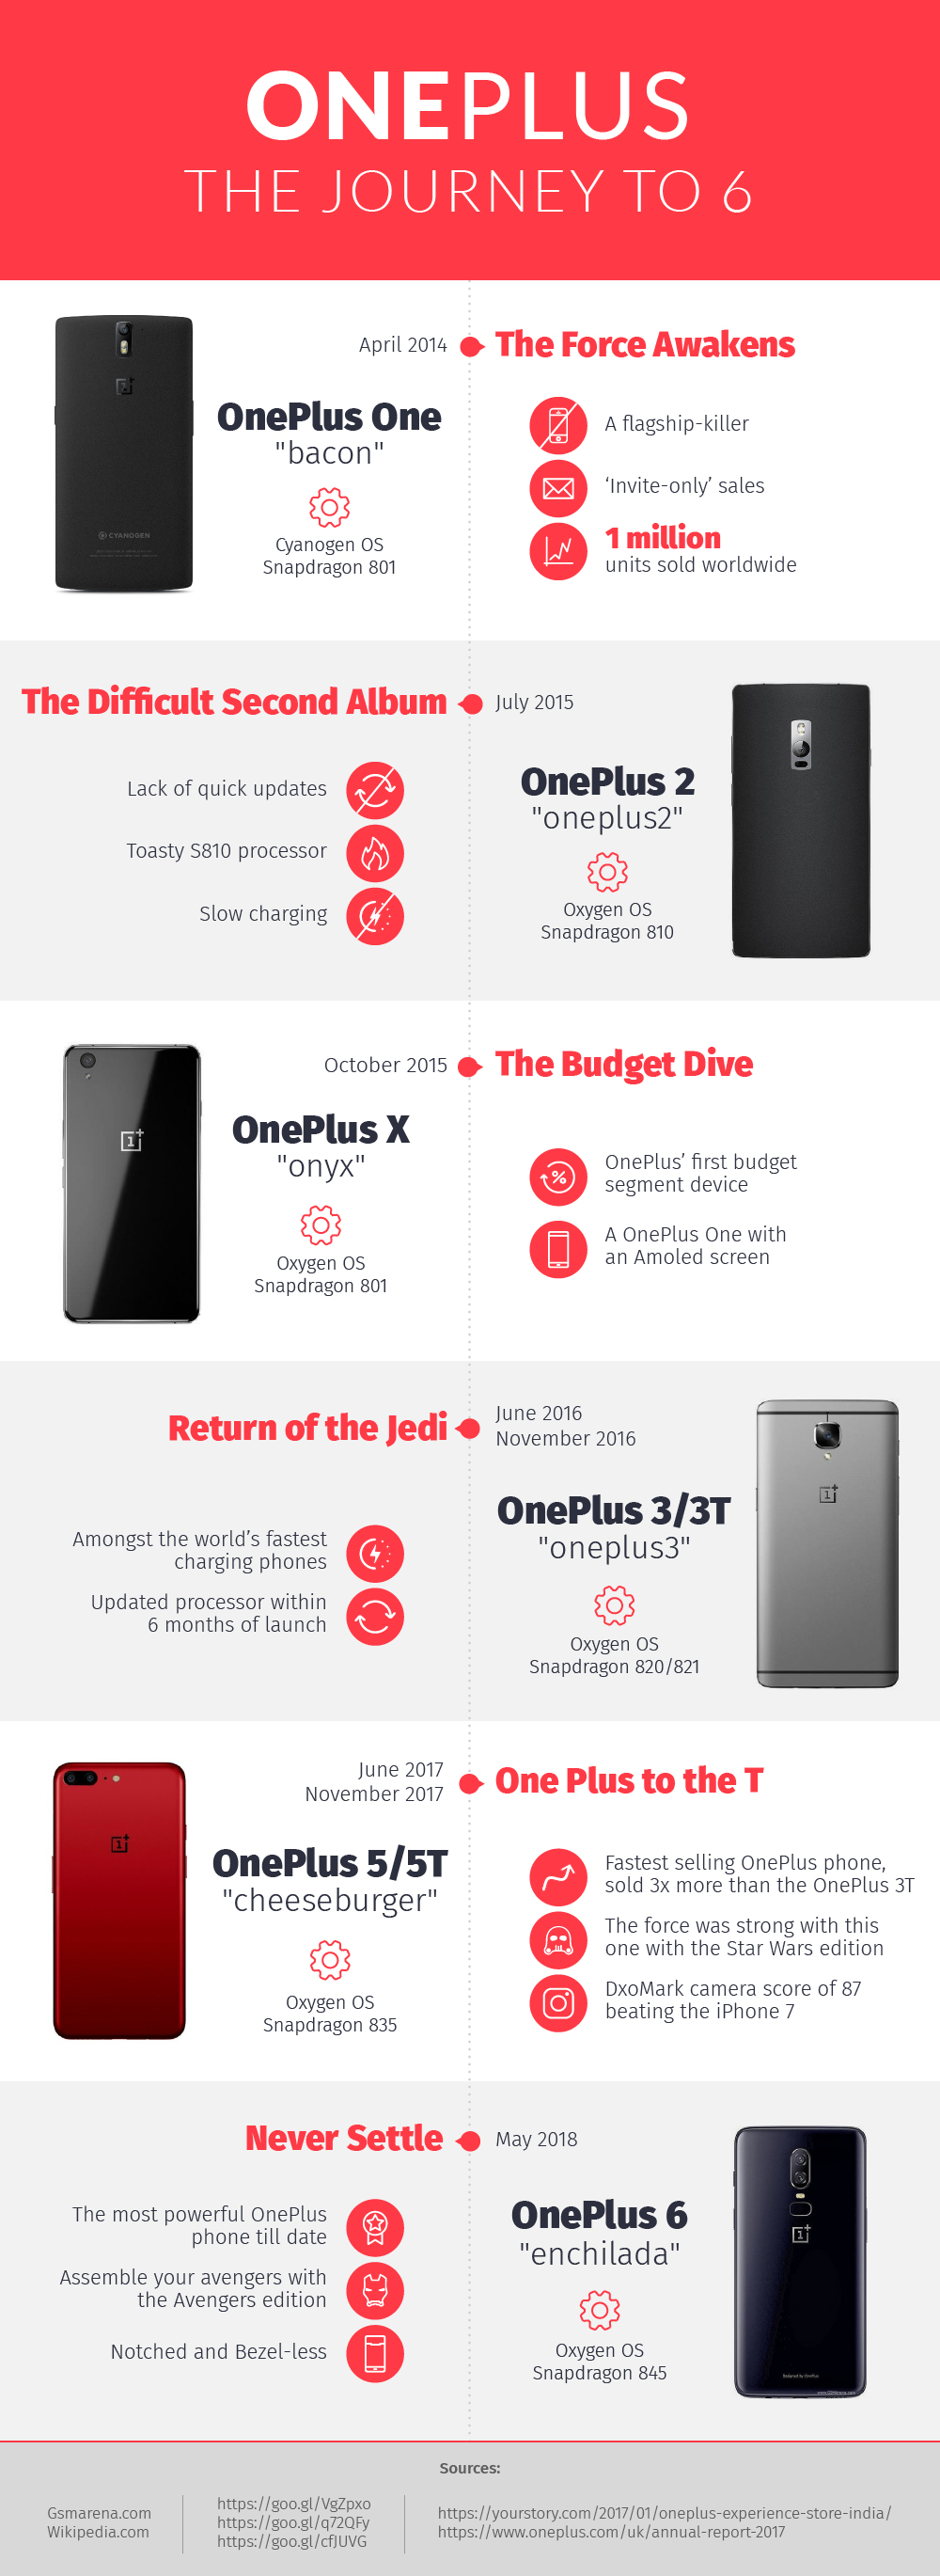 OnePlus the Journey to Six